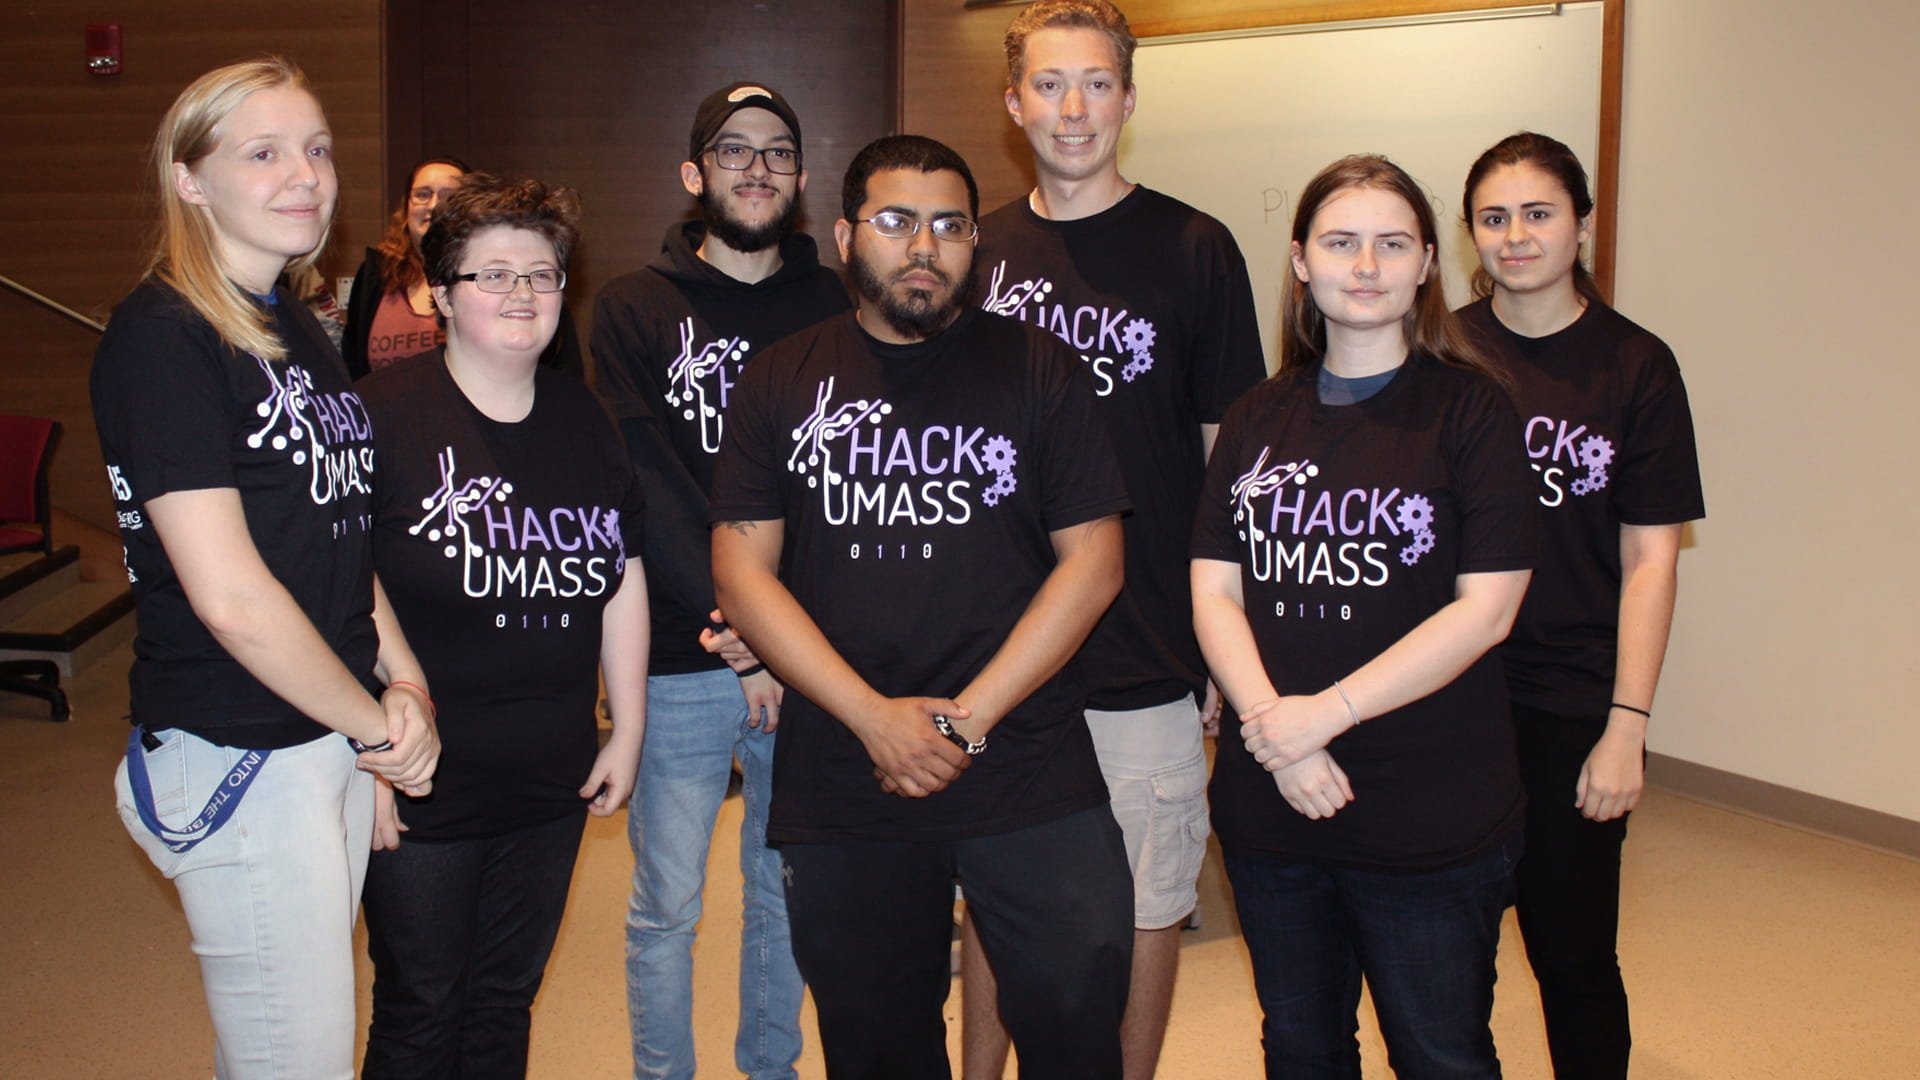 CQ9电子游戏 students pose for a photo during HackUMass VI at UMass Amherst.